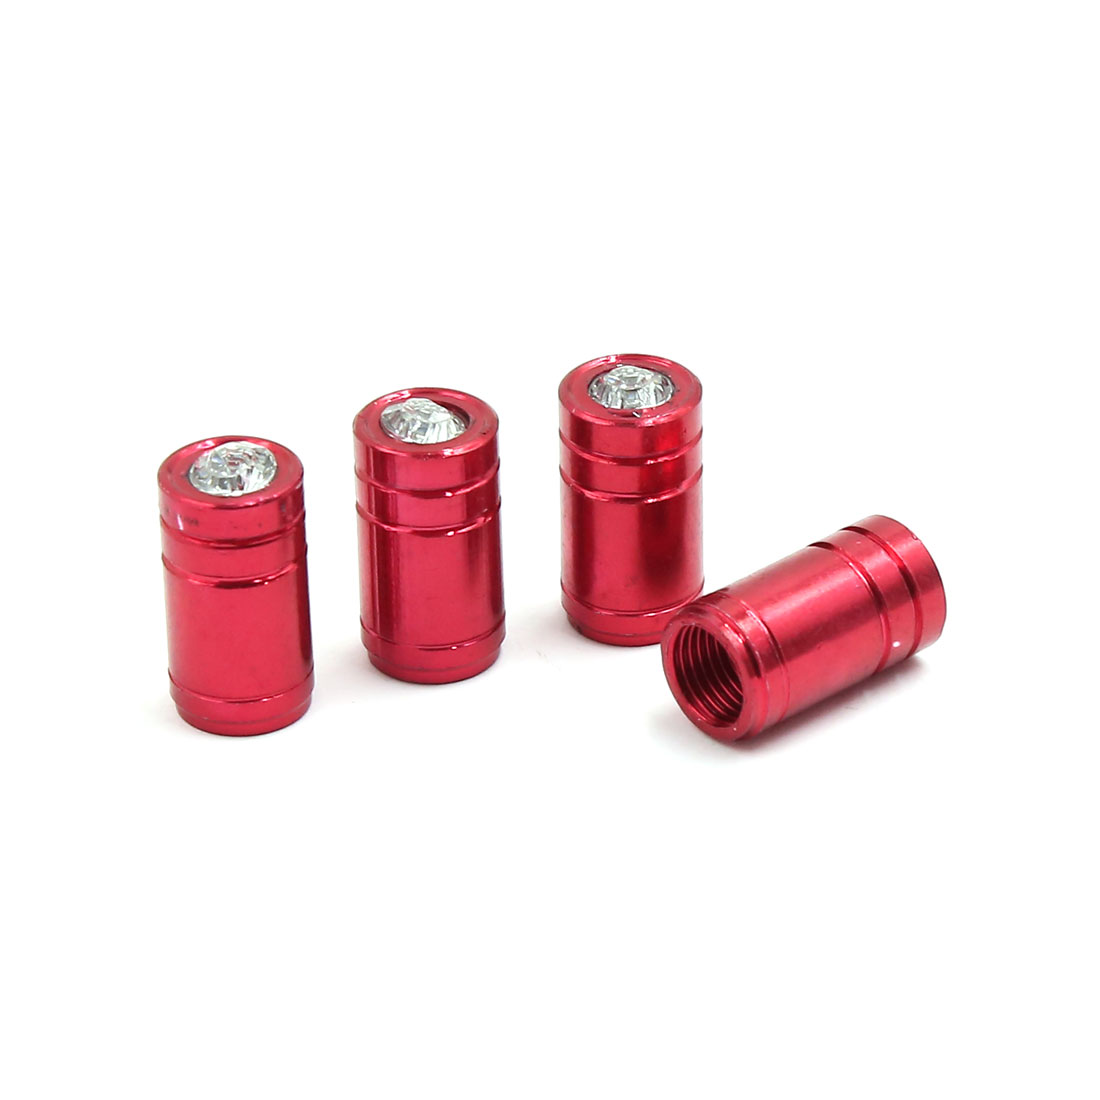 4 Pcs 7mm Thread Dia Car Vehicle Tyre Tire Wheel Air Valve Caps Cover Red